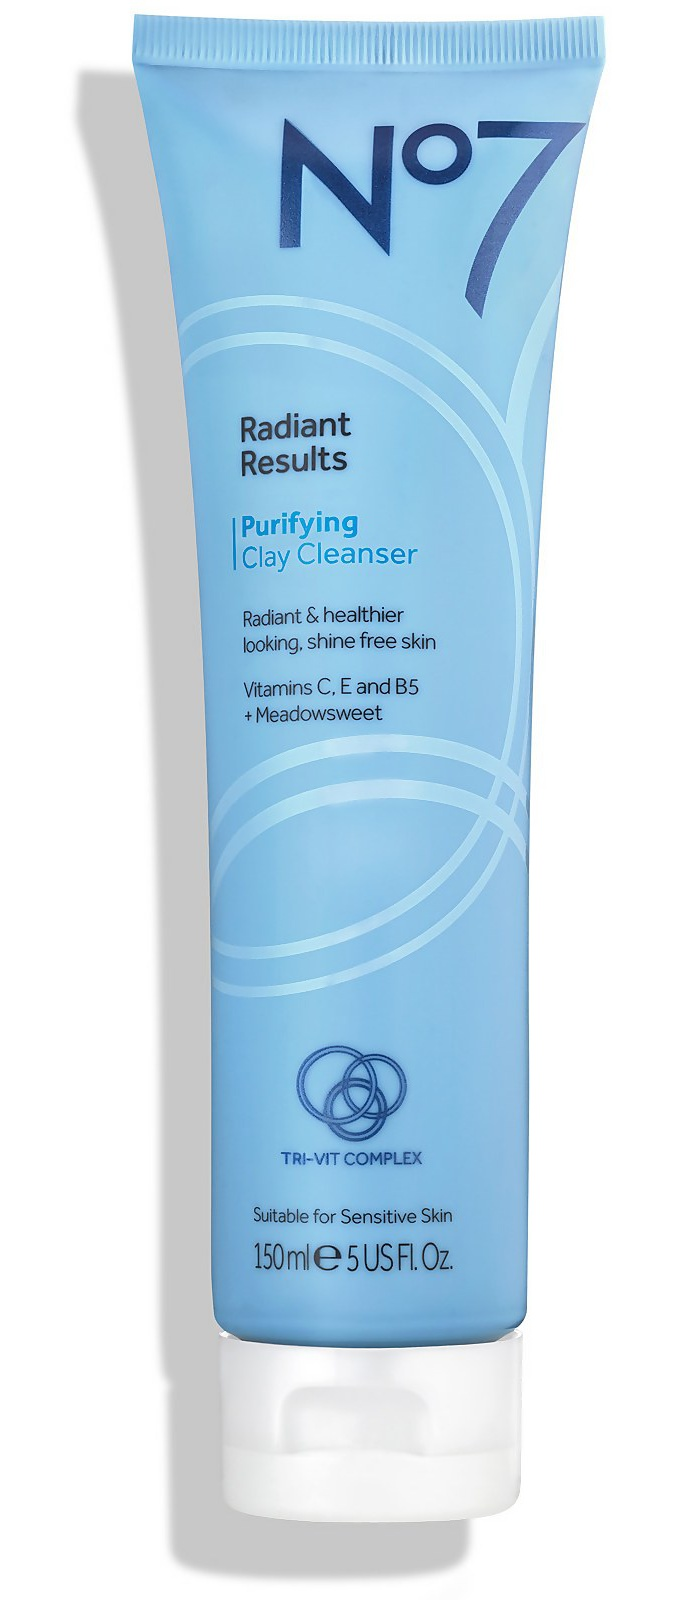 Boots No7 Radiant Results Purifying Clay Cleanser